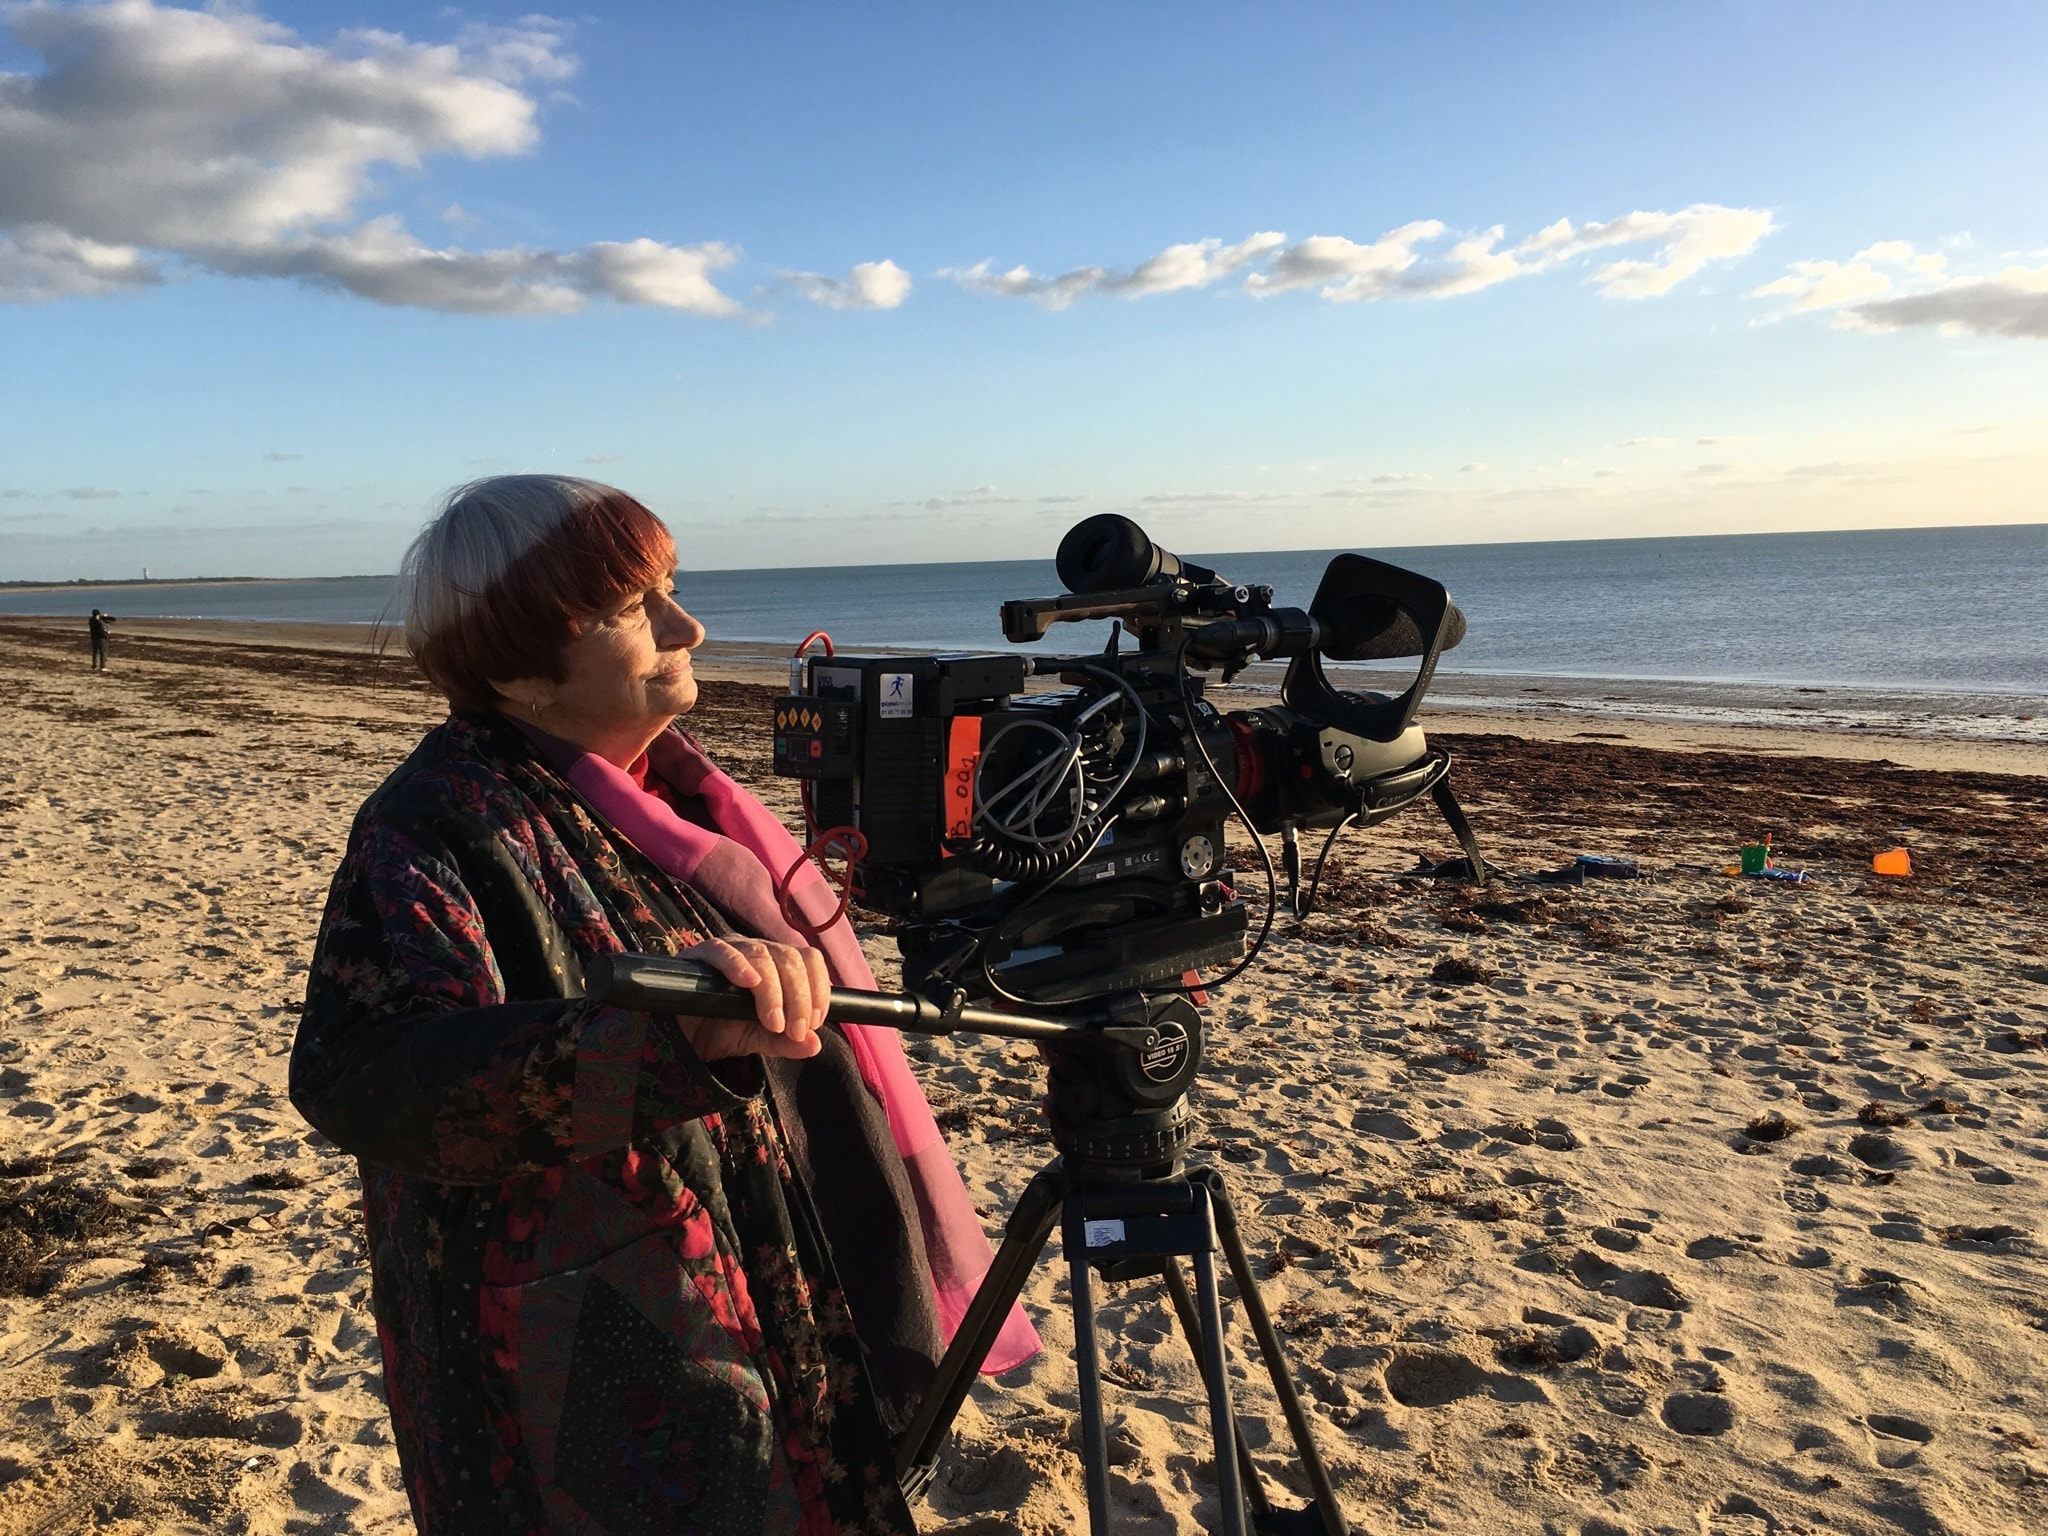 Varda by Agnès d'Agnès Varda image film documentaire